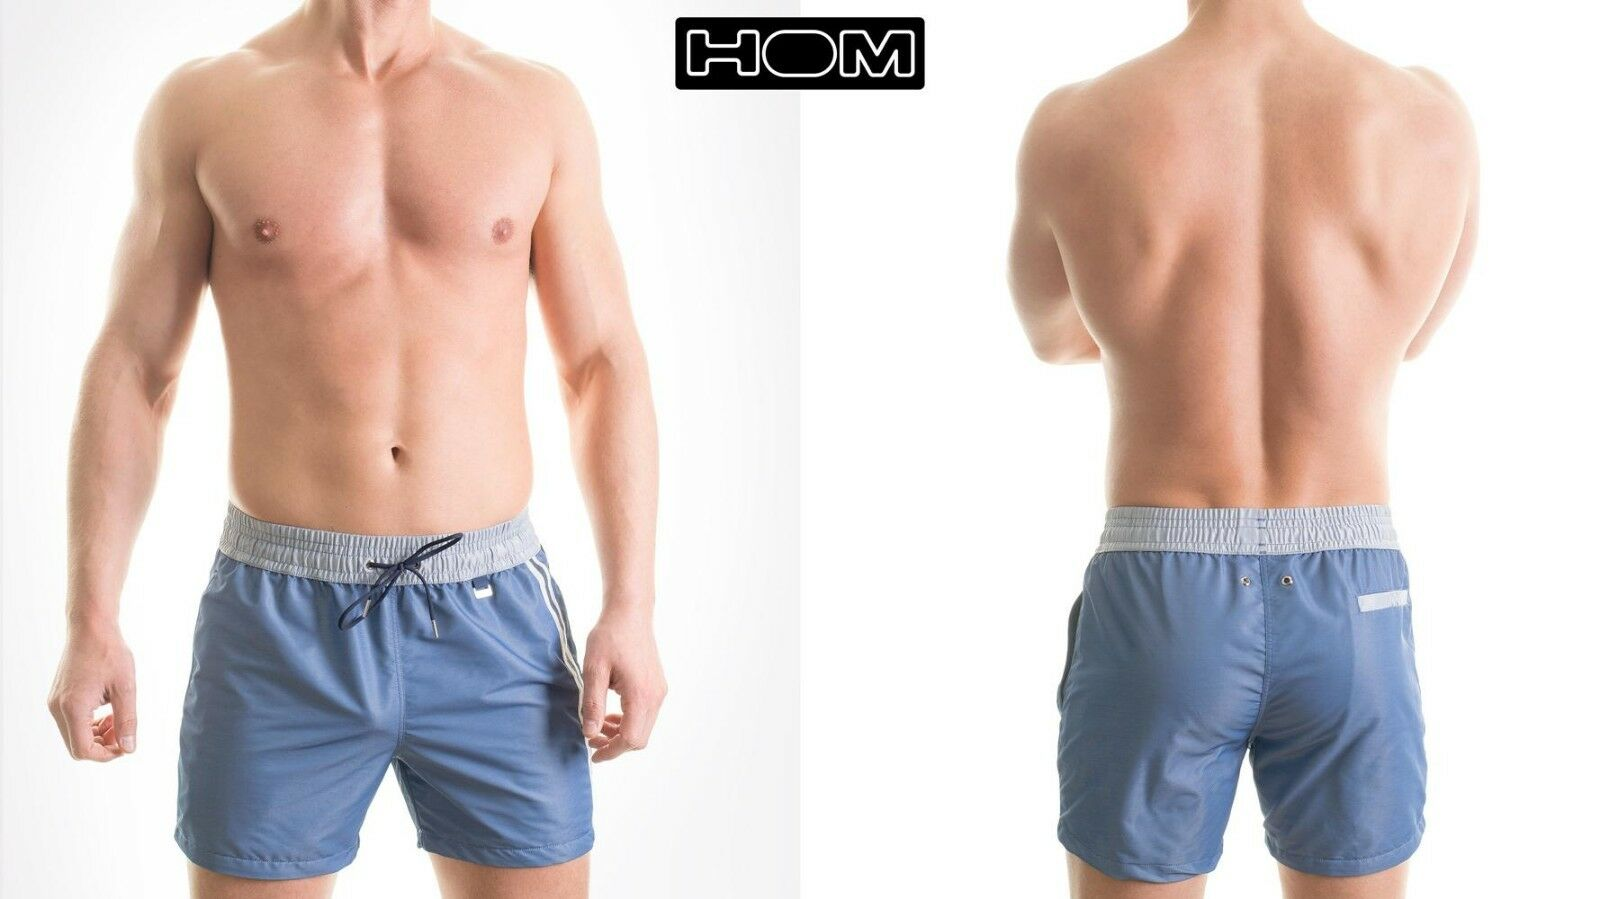 669f6984d0f2e HOM Jeans pool sexy swimming patterned lined shorts sun summer trunk ...